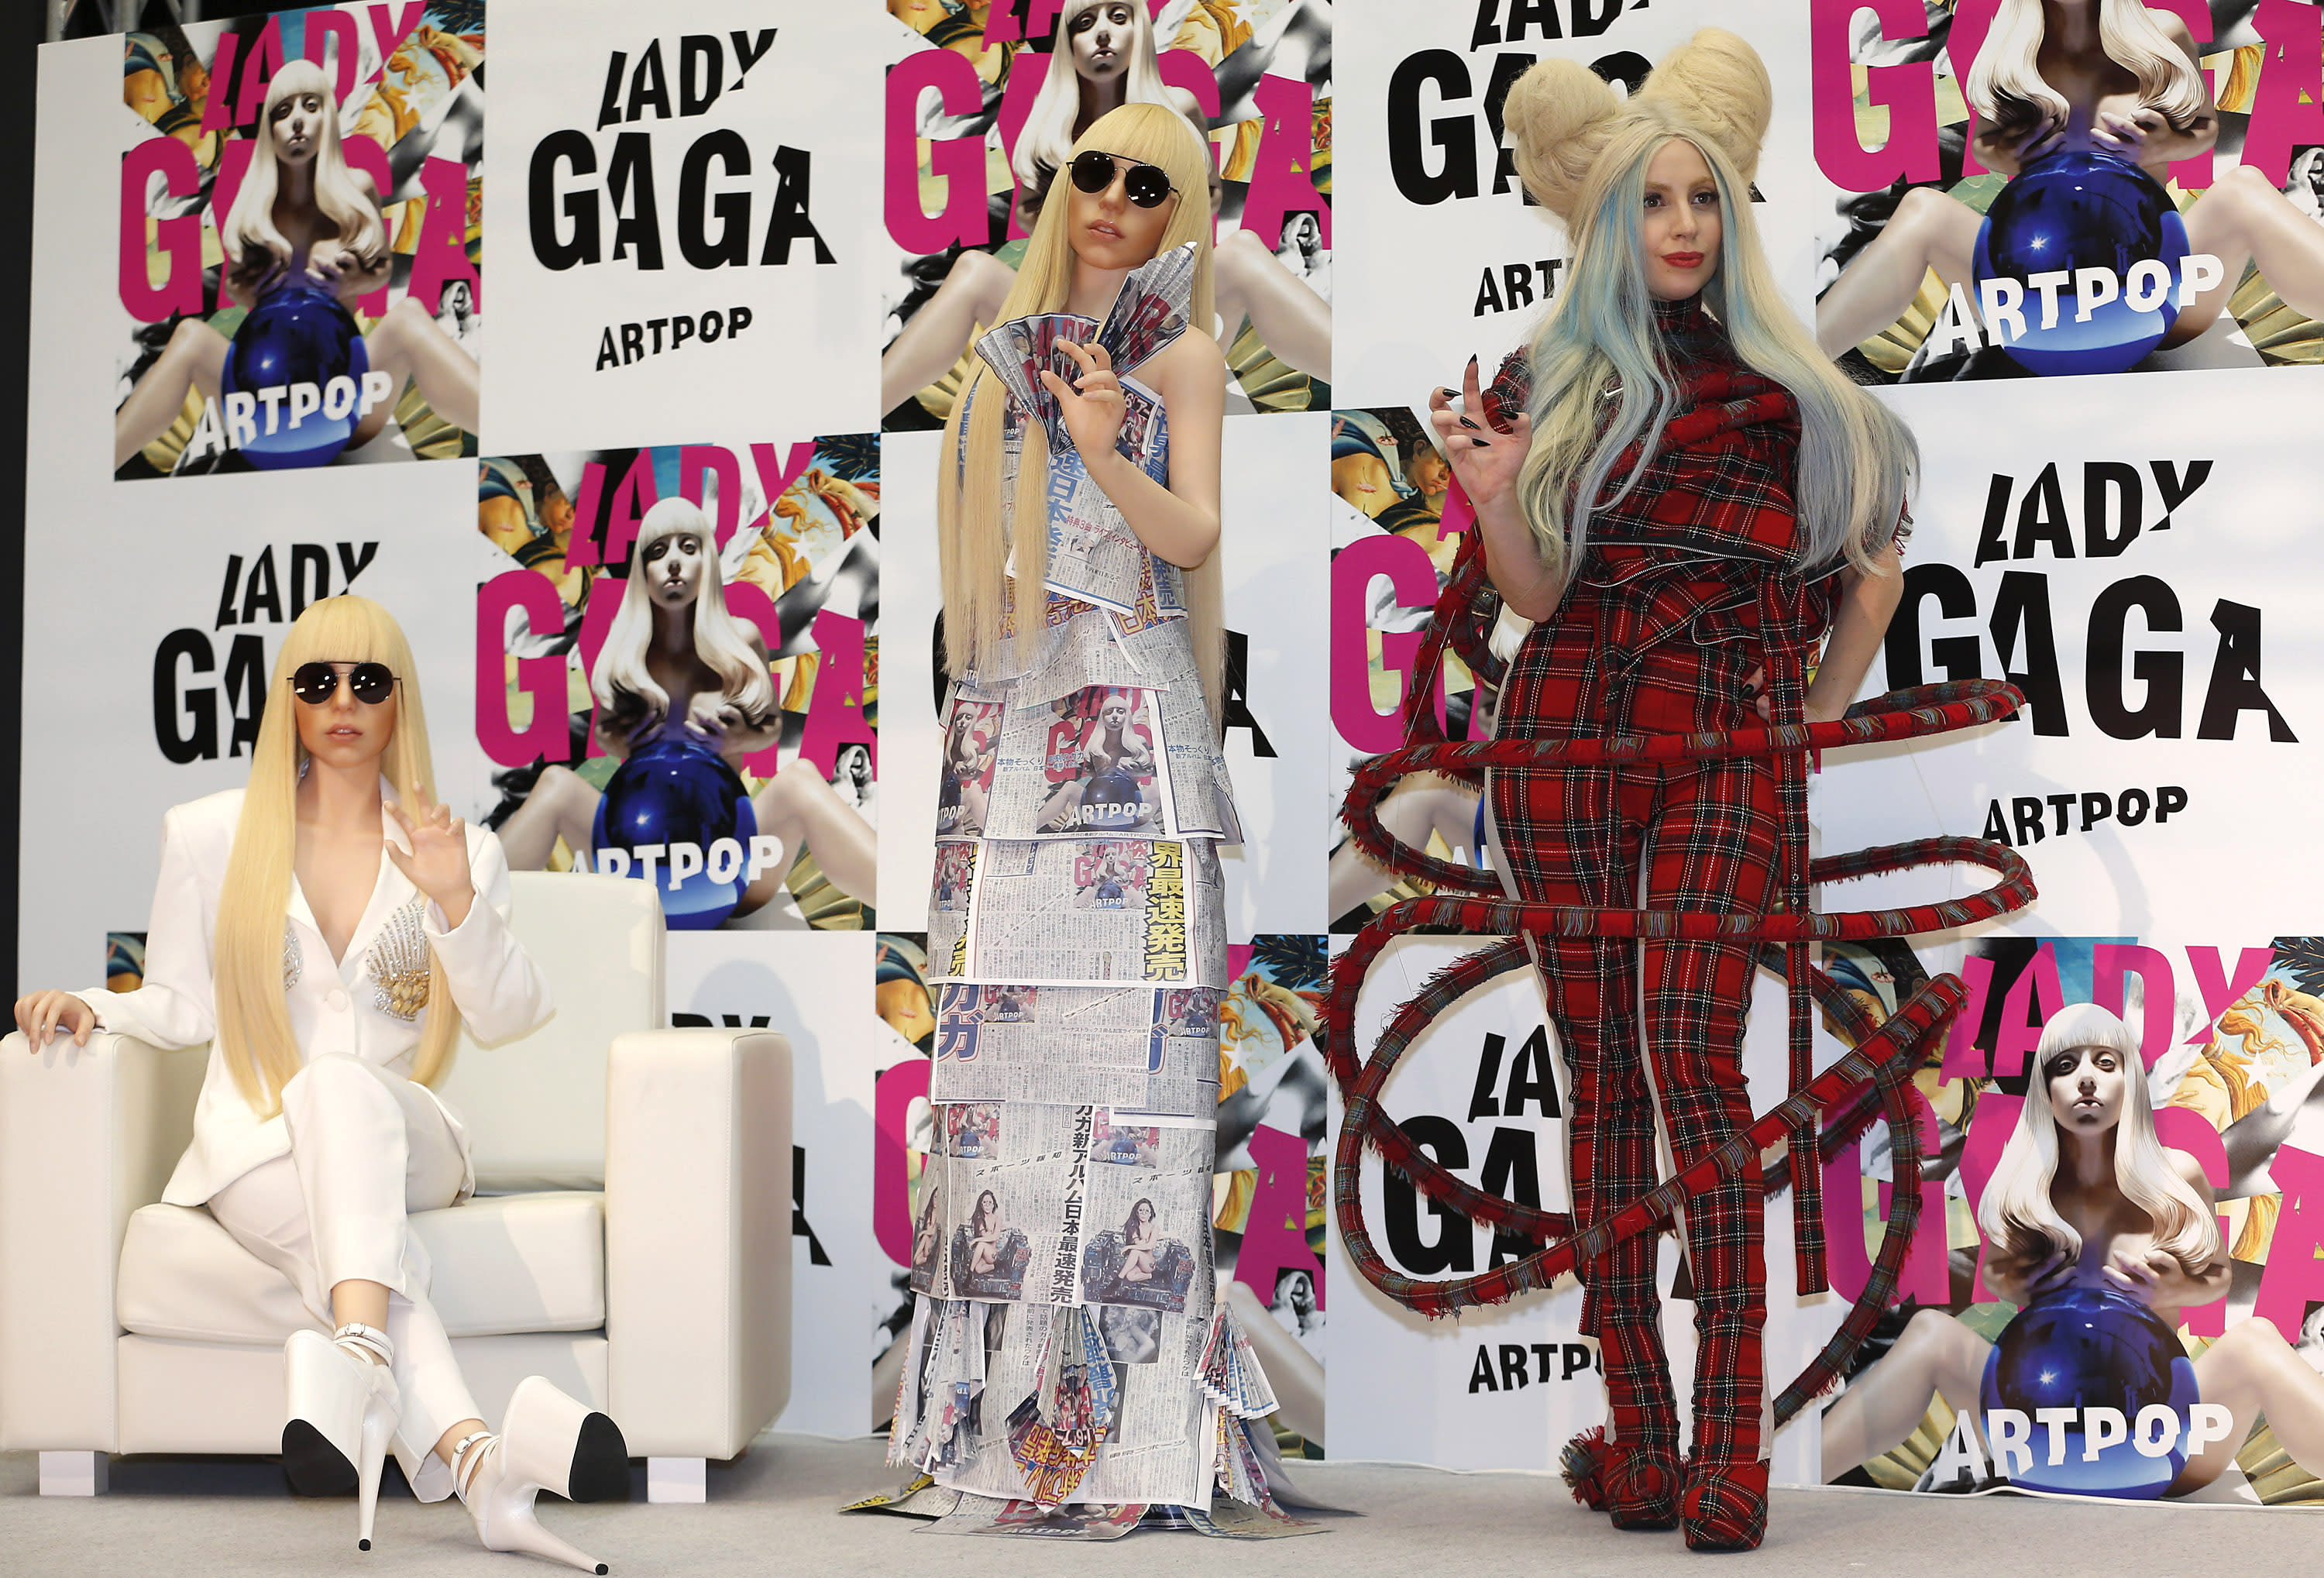 Lady Gaga Appears To Channel Billie Eilish In Blue Hair And Bling As She Unwinds